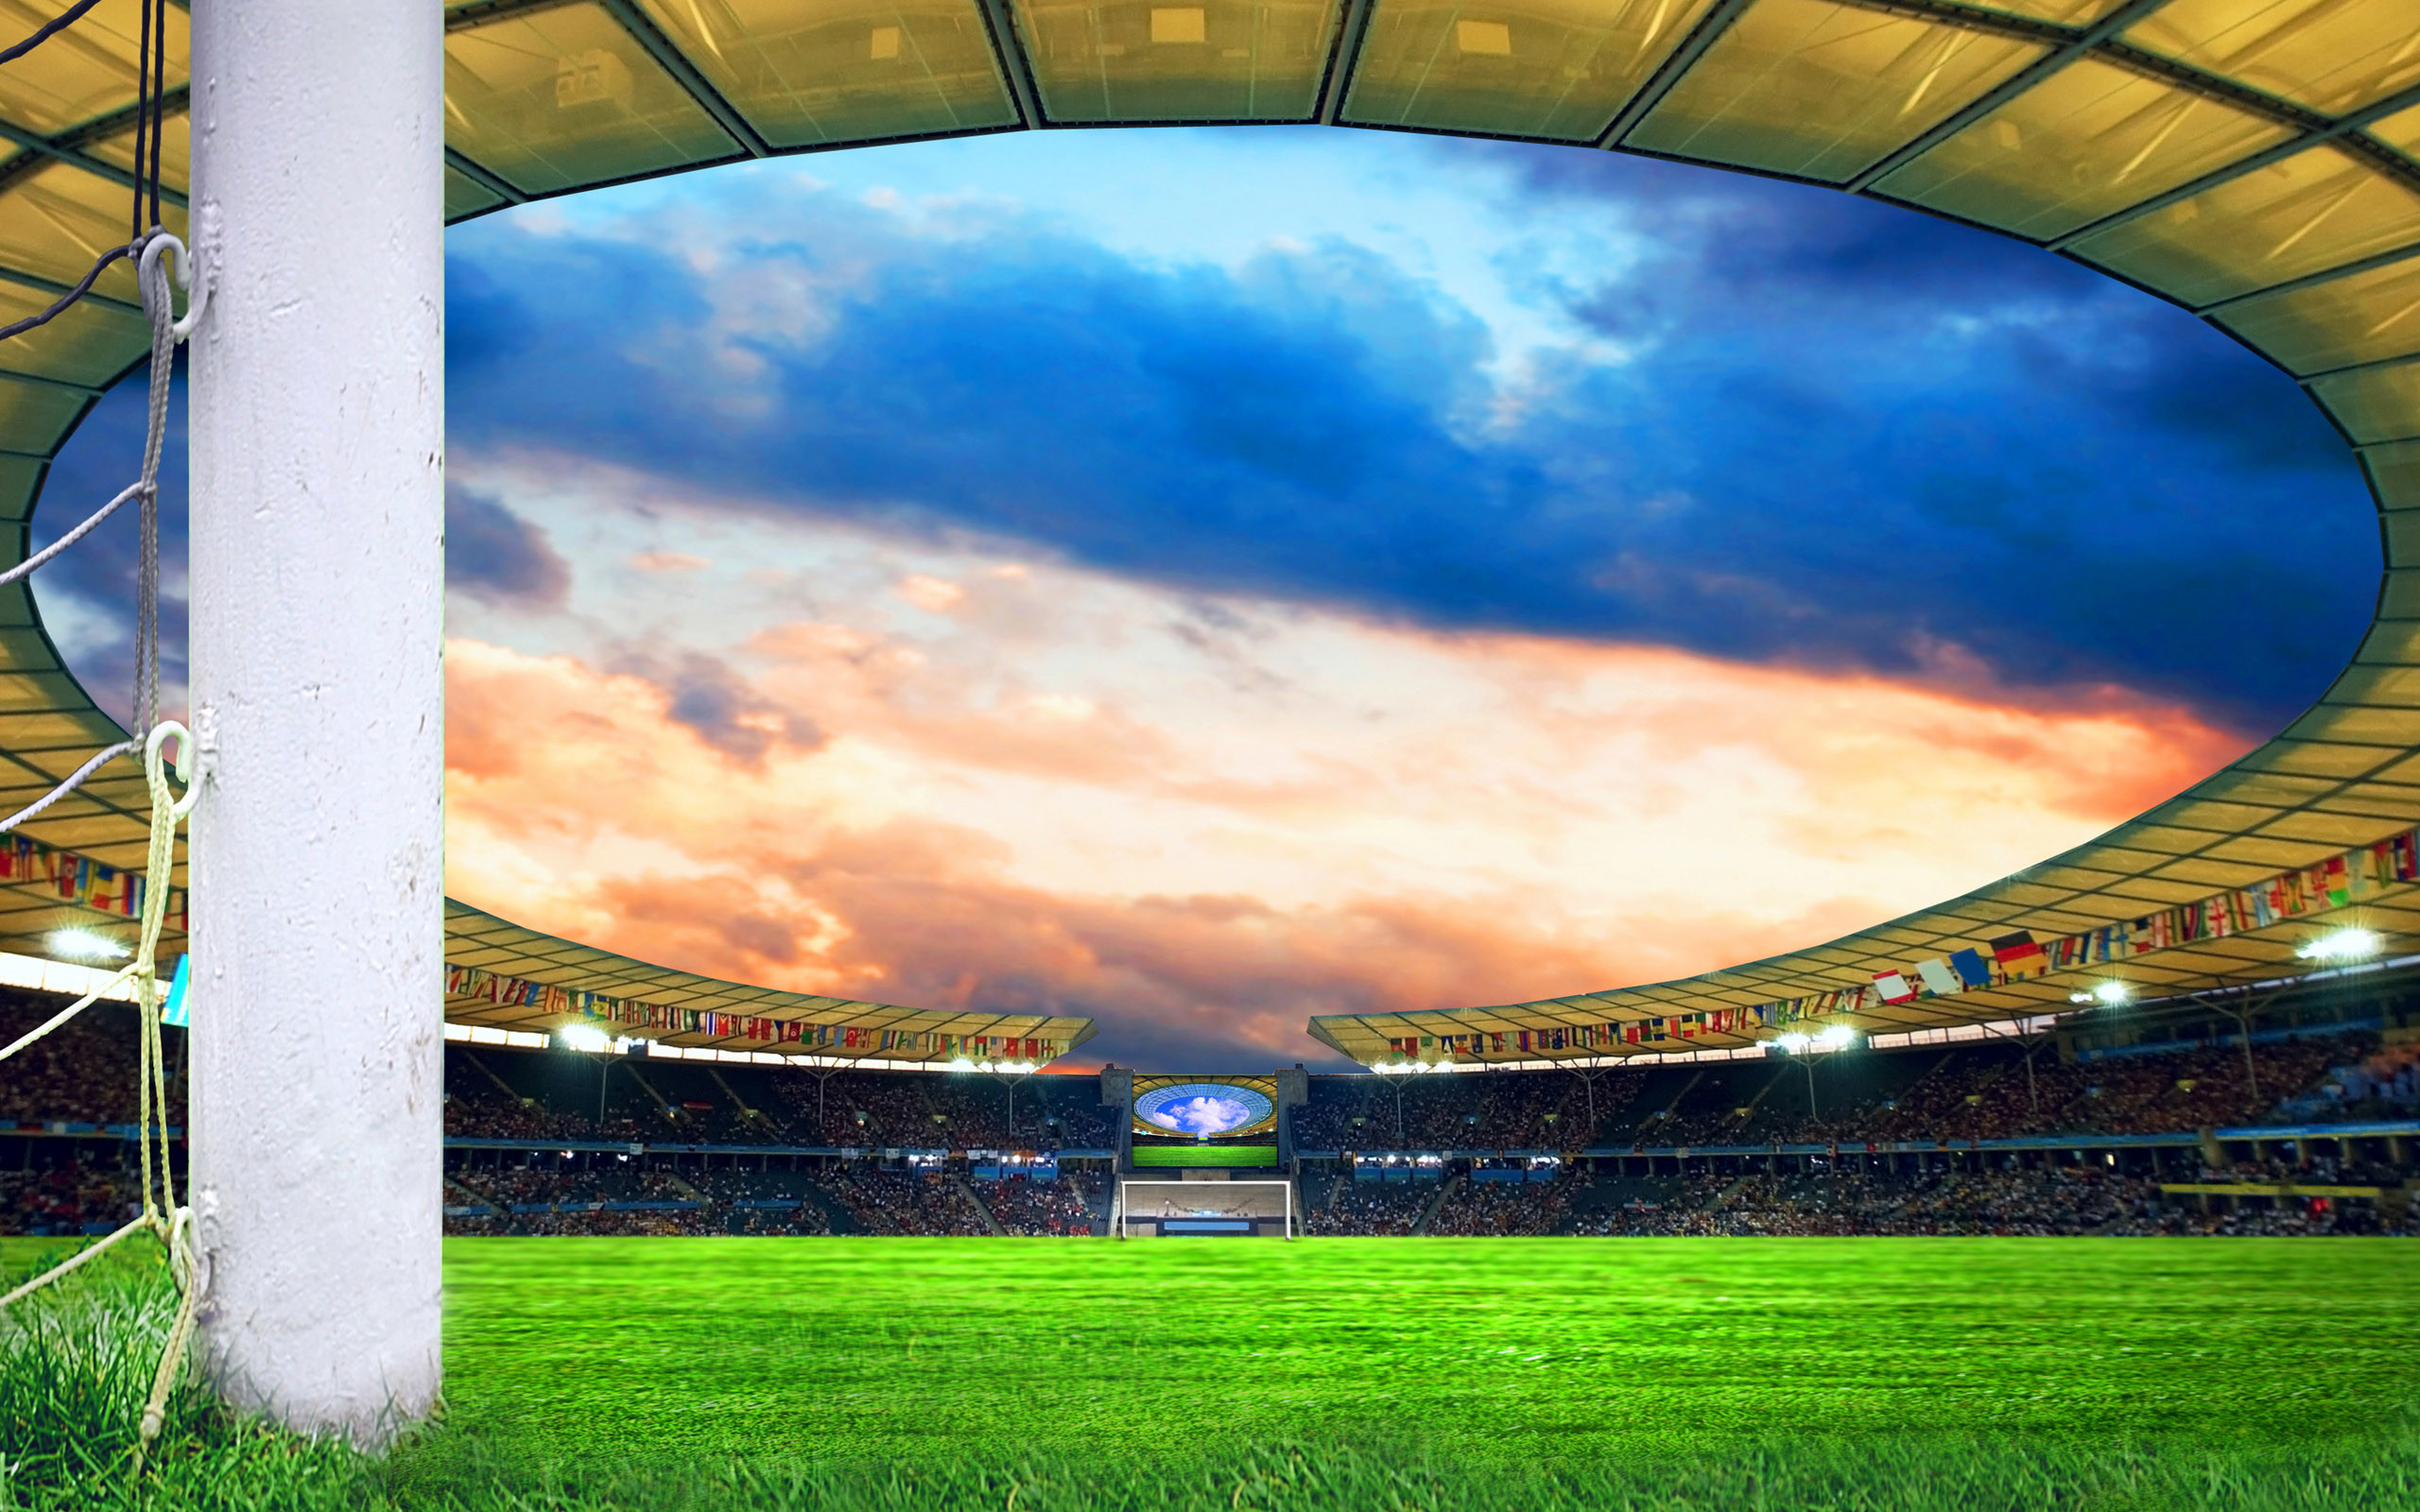 Free Download High quality Outdoor stadium Football .